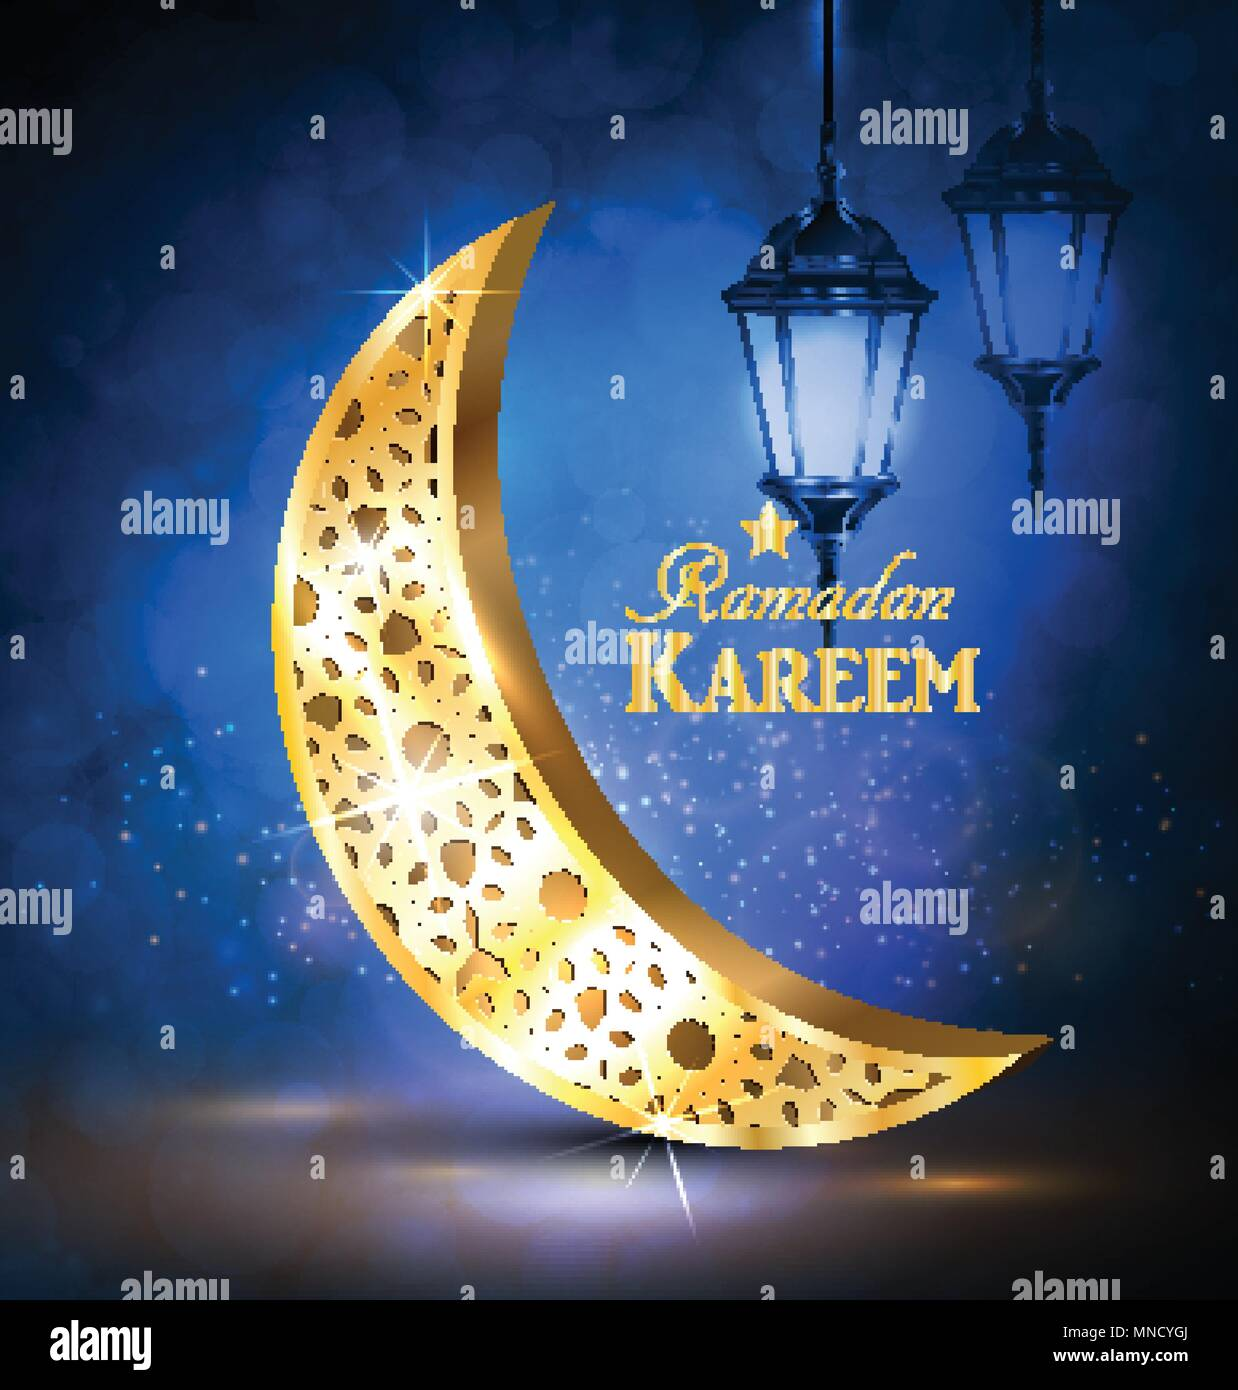 Ramadan greetings vector stock vector art illustration vector ramadan greetings vector m4hsunfo